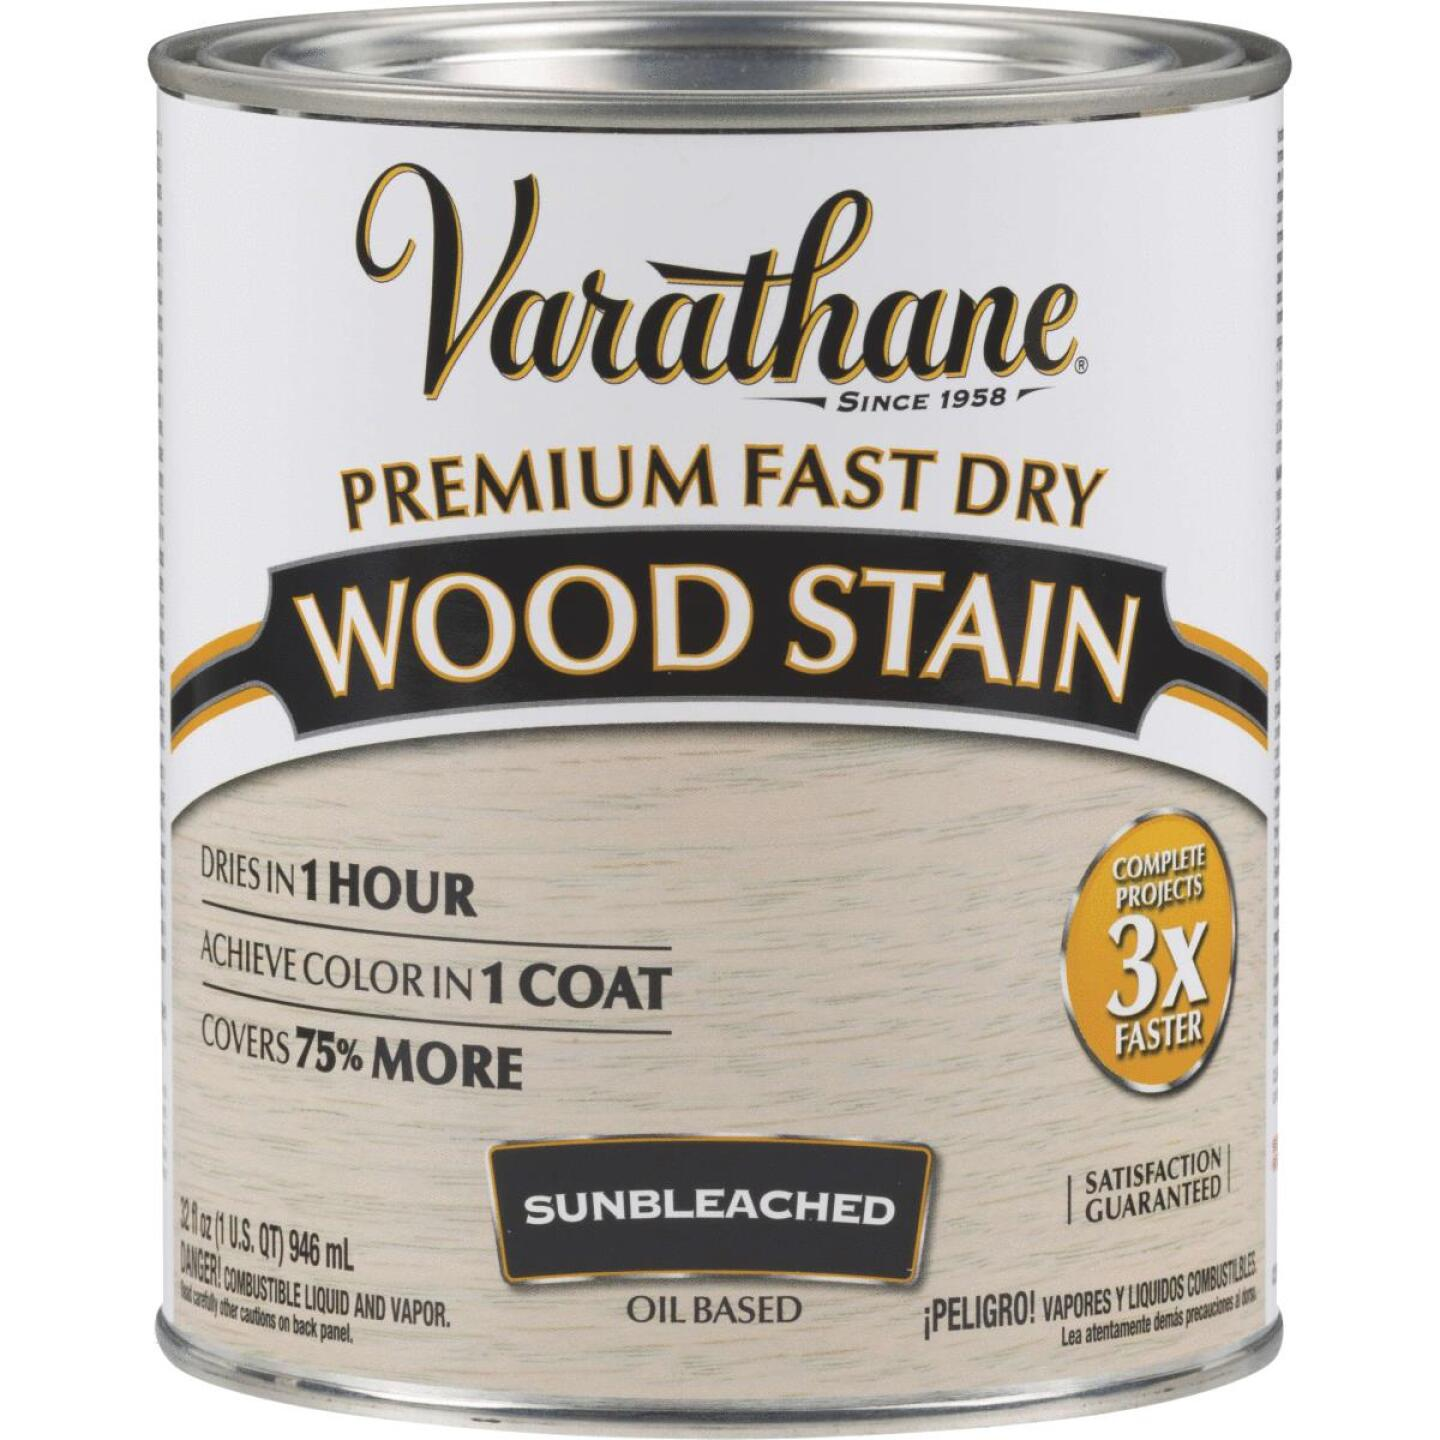 Varathane Fast Dry Sunbleached Wood Urethane Modified Alkyd Interior Wood Stain, 1 Qt. Image 1